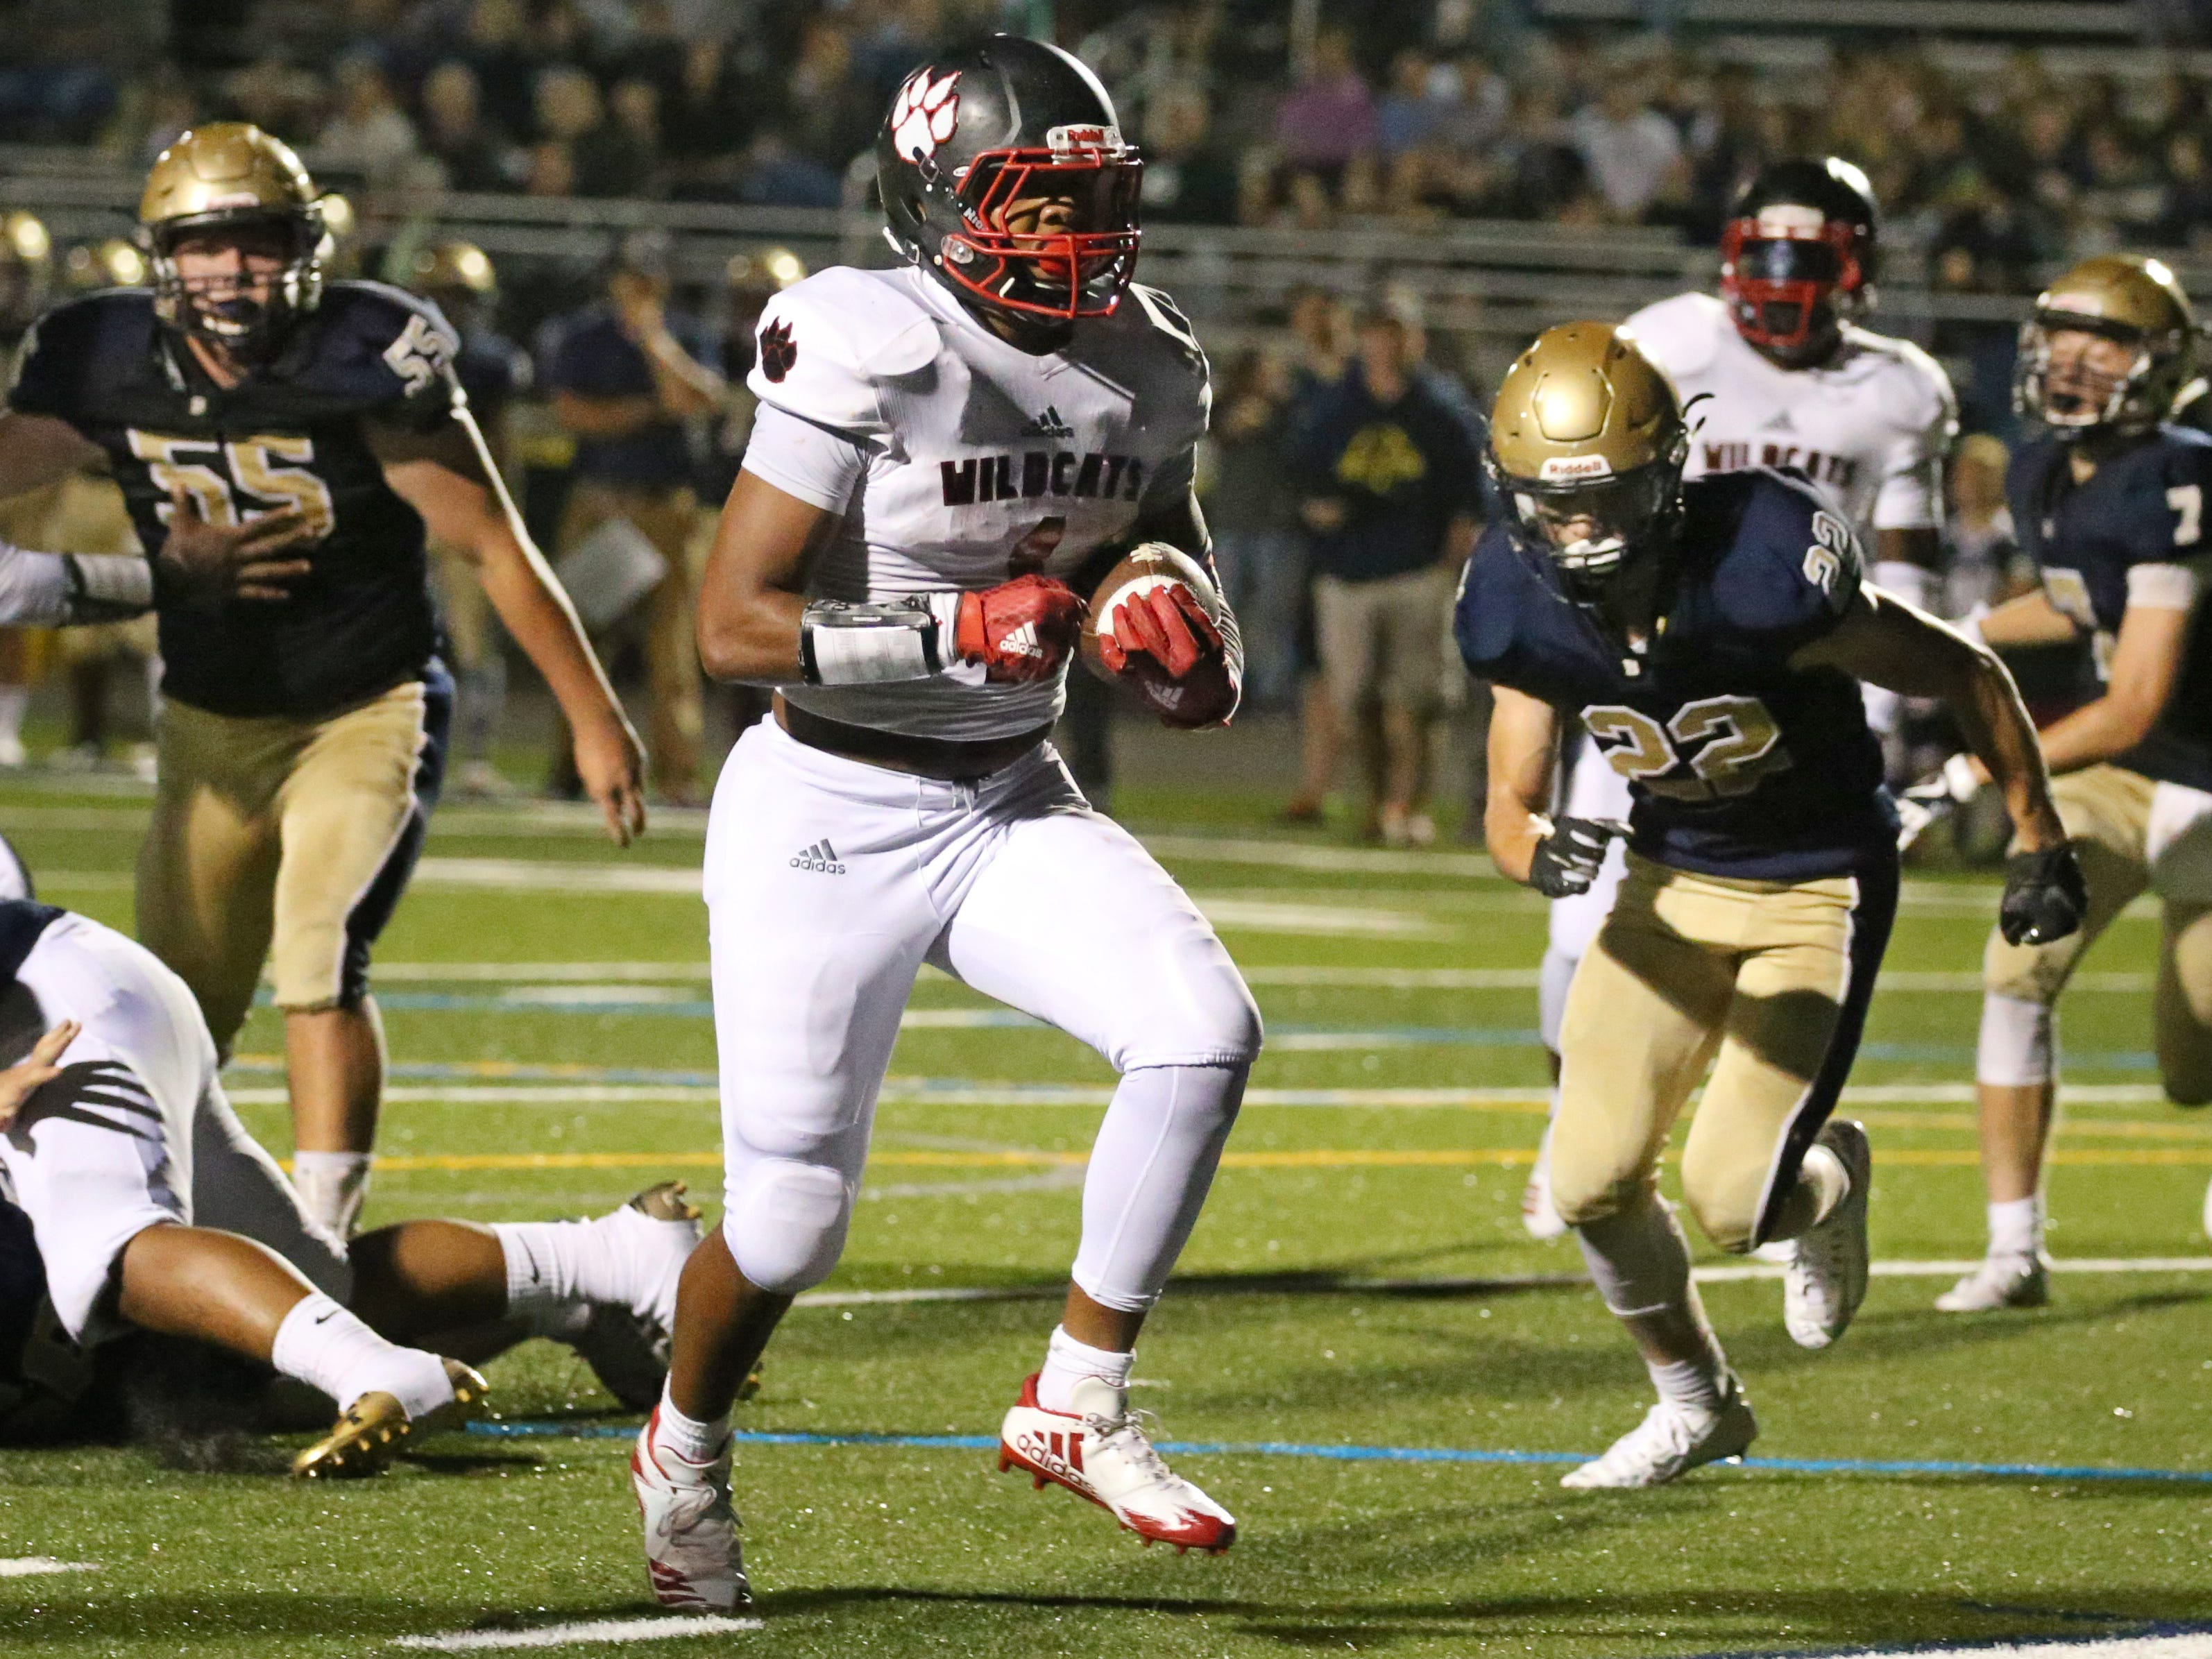 Wilson's Desi Floyd Jr., center, races through a big hole in the line to score in the second quarter.